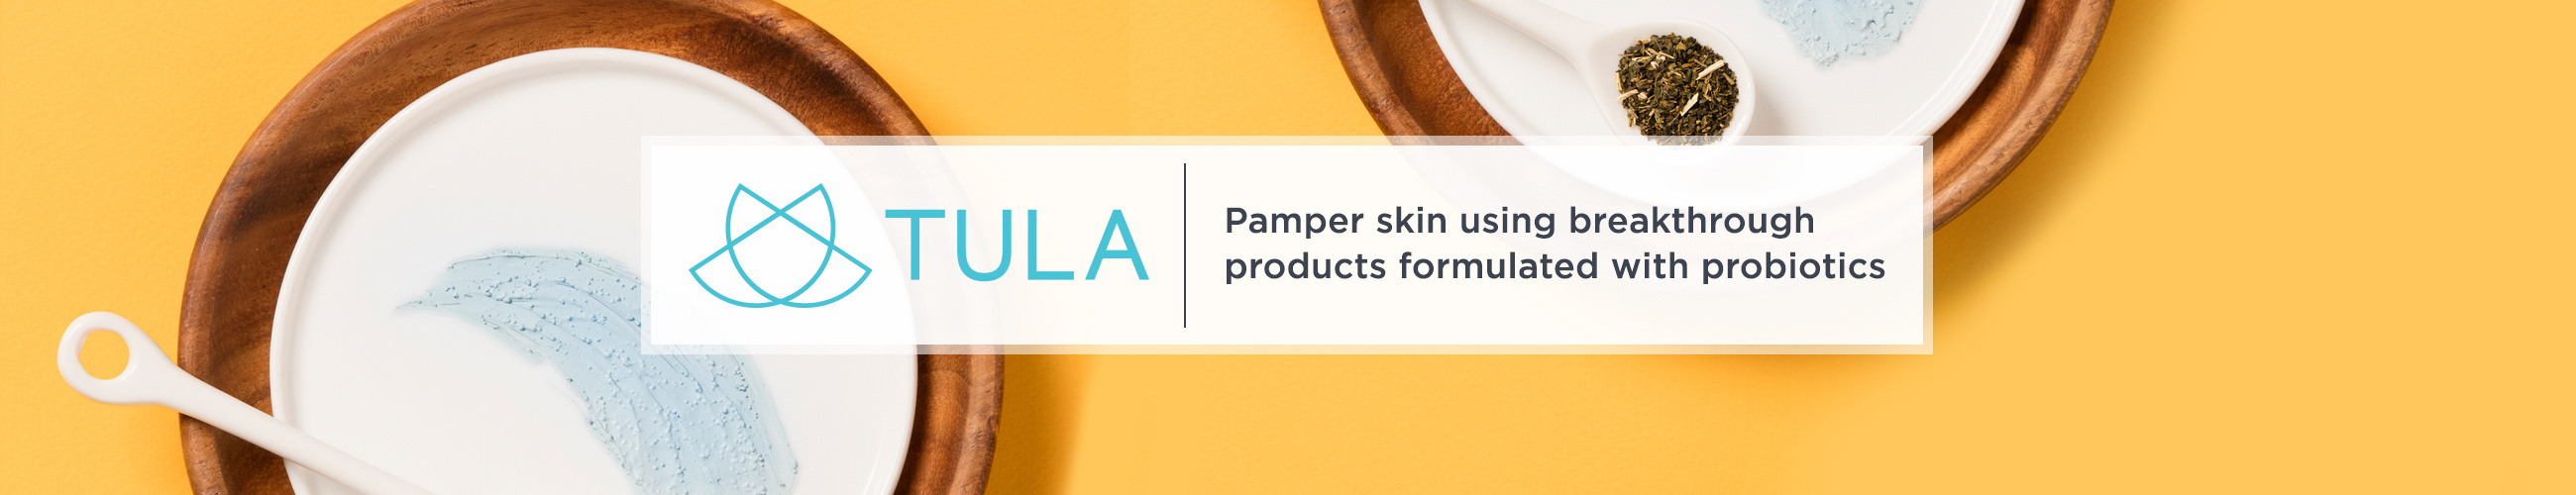 TULA,  Pamper skin using breakthrough products formulated with probiotics